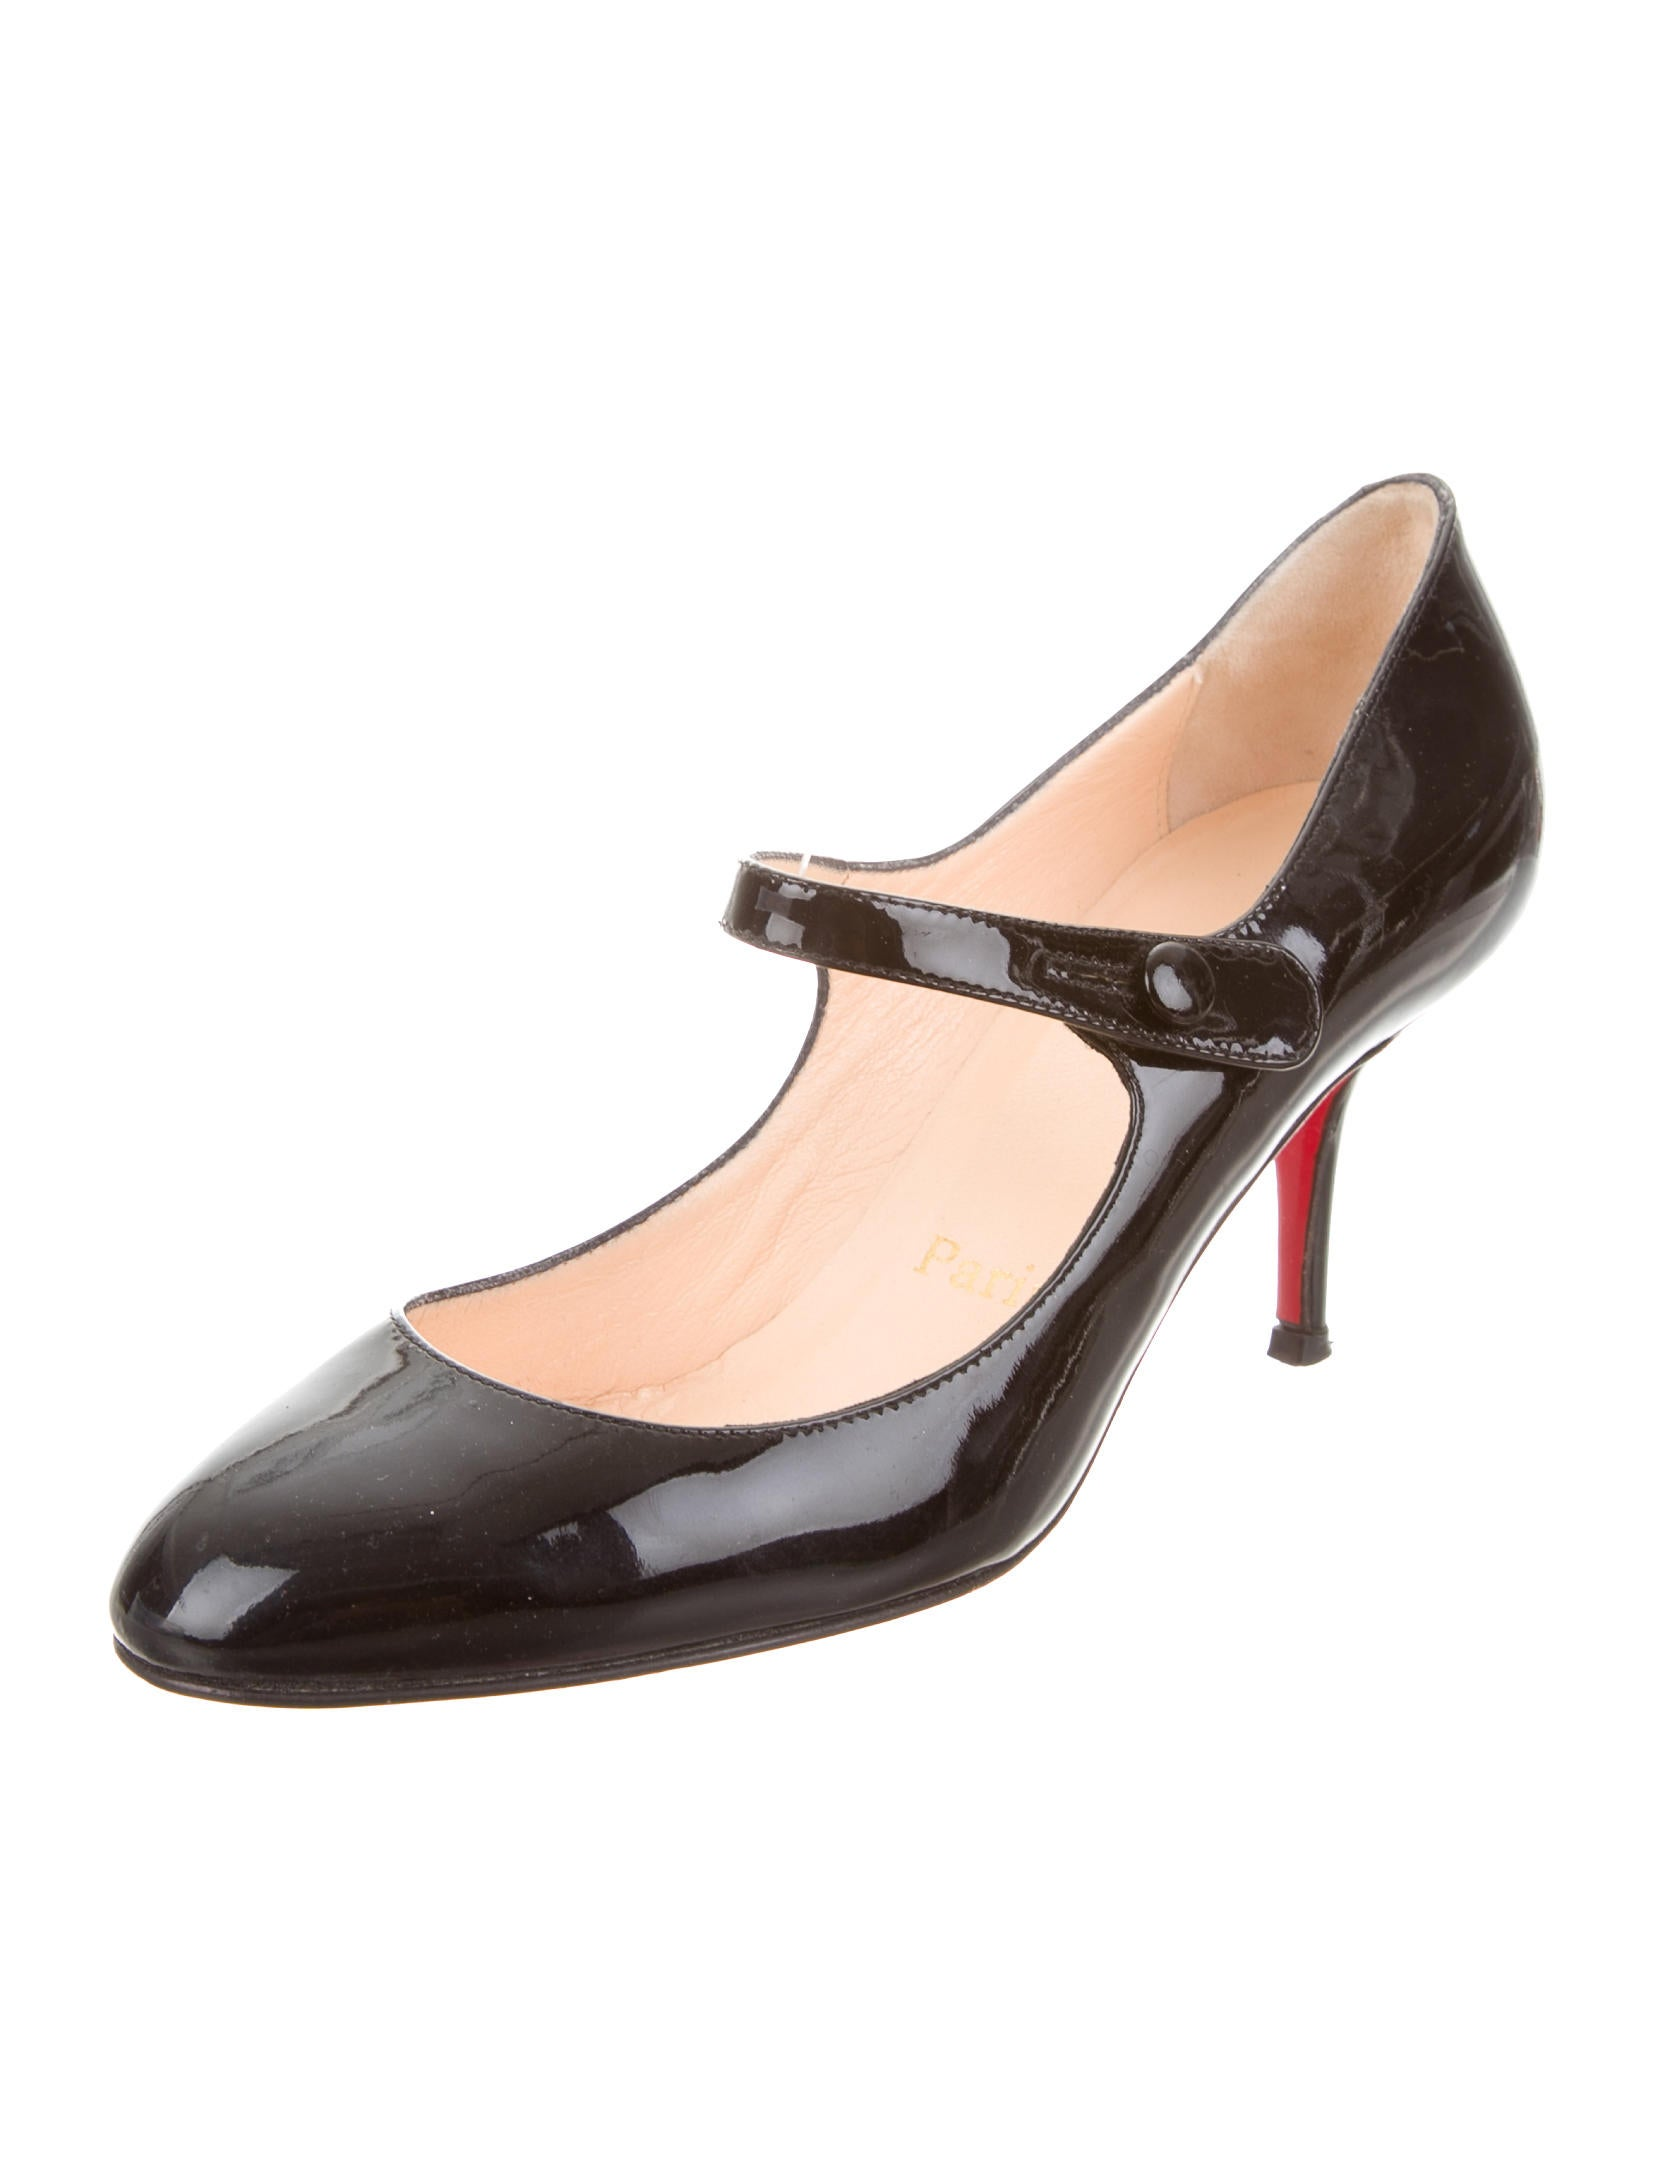 Christian Louboutin Patent Mary Jane Pumps Shoes